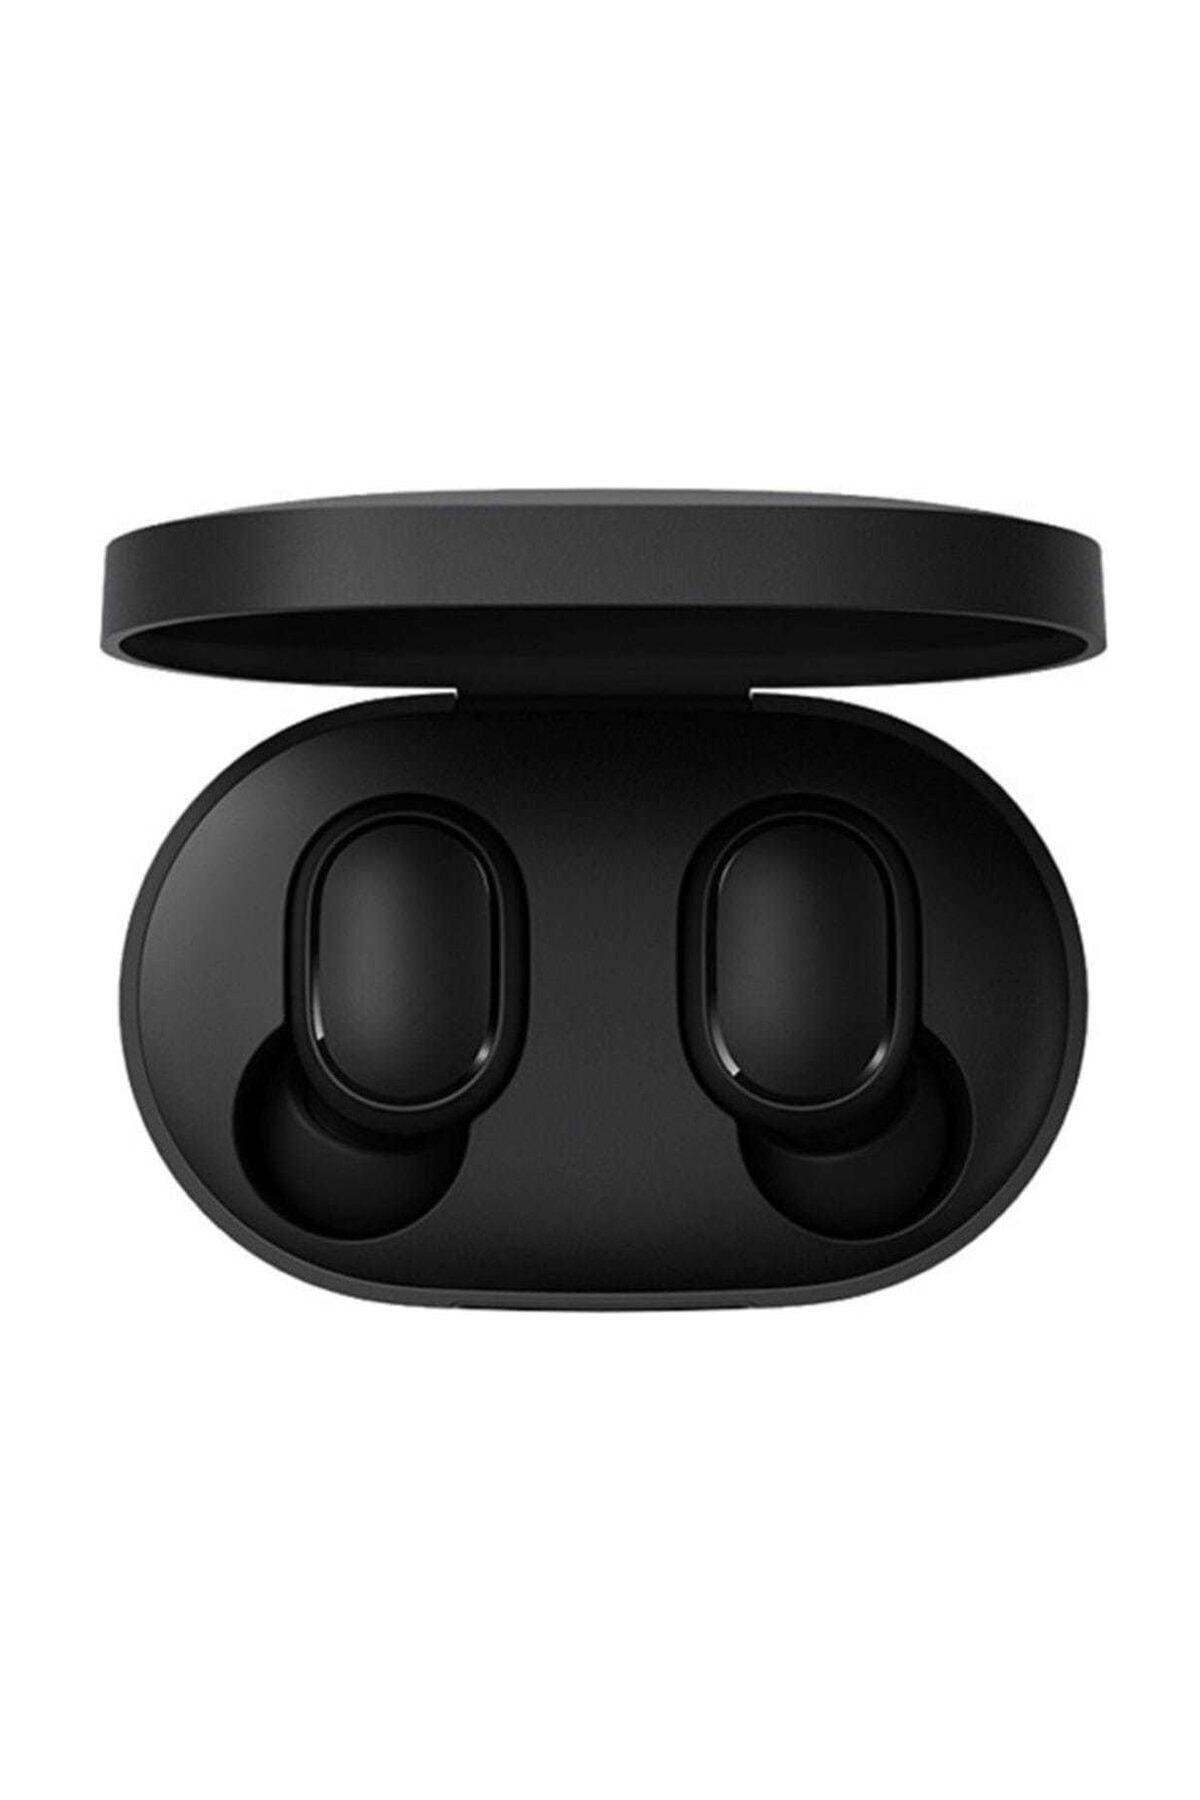 Fiyat/Performans: Xiaomi Redmi Airdots Tws Bluetooth